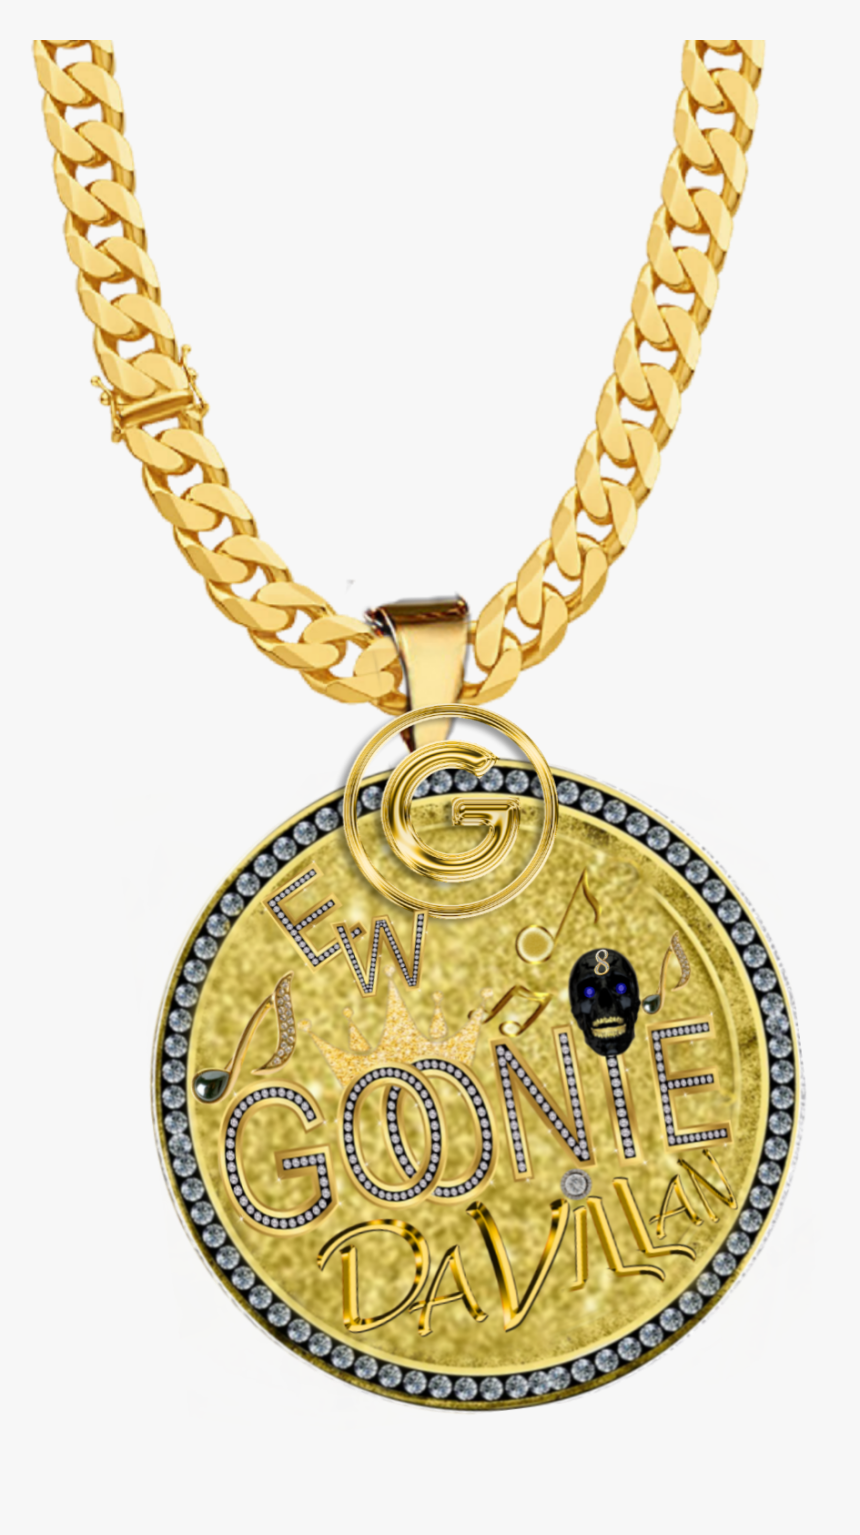 #goonie #goon #diamond #gold #chain #necklace #gmst - Thug Life Chain Png, Transparent Png, Free Download